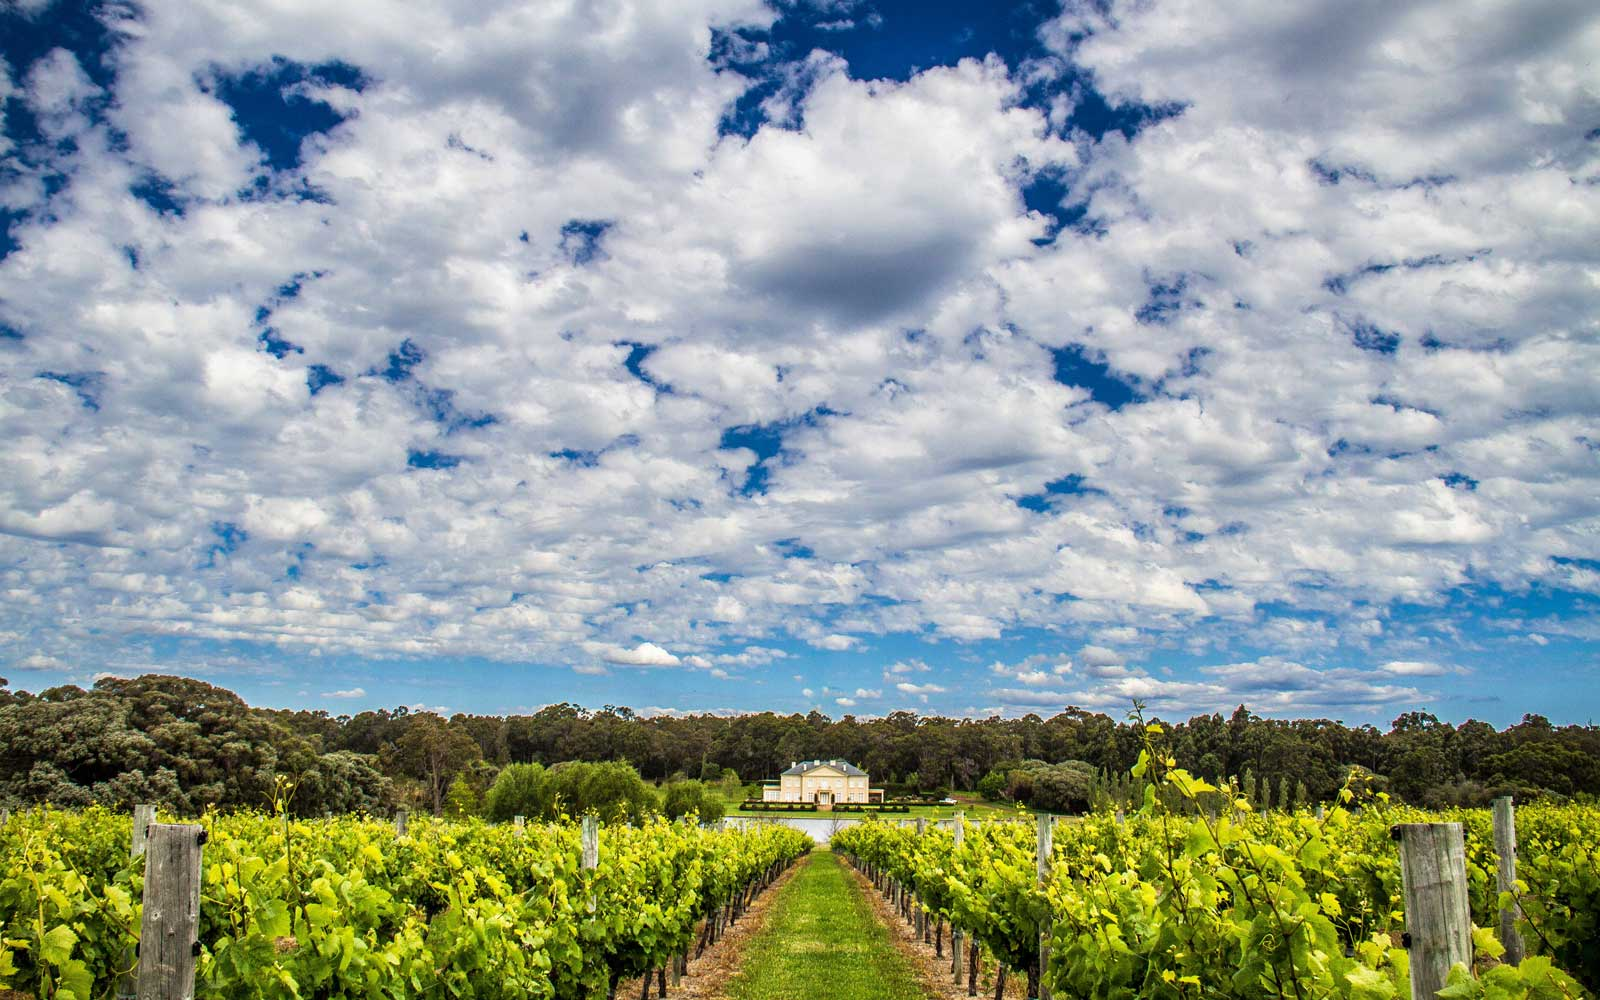 Vineyard in Australia's Margaret River